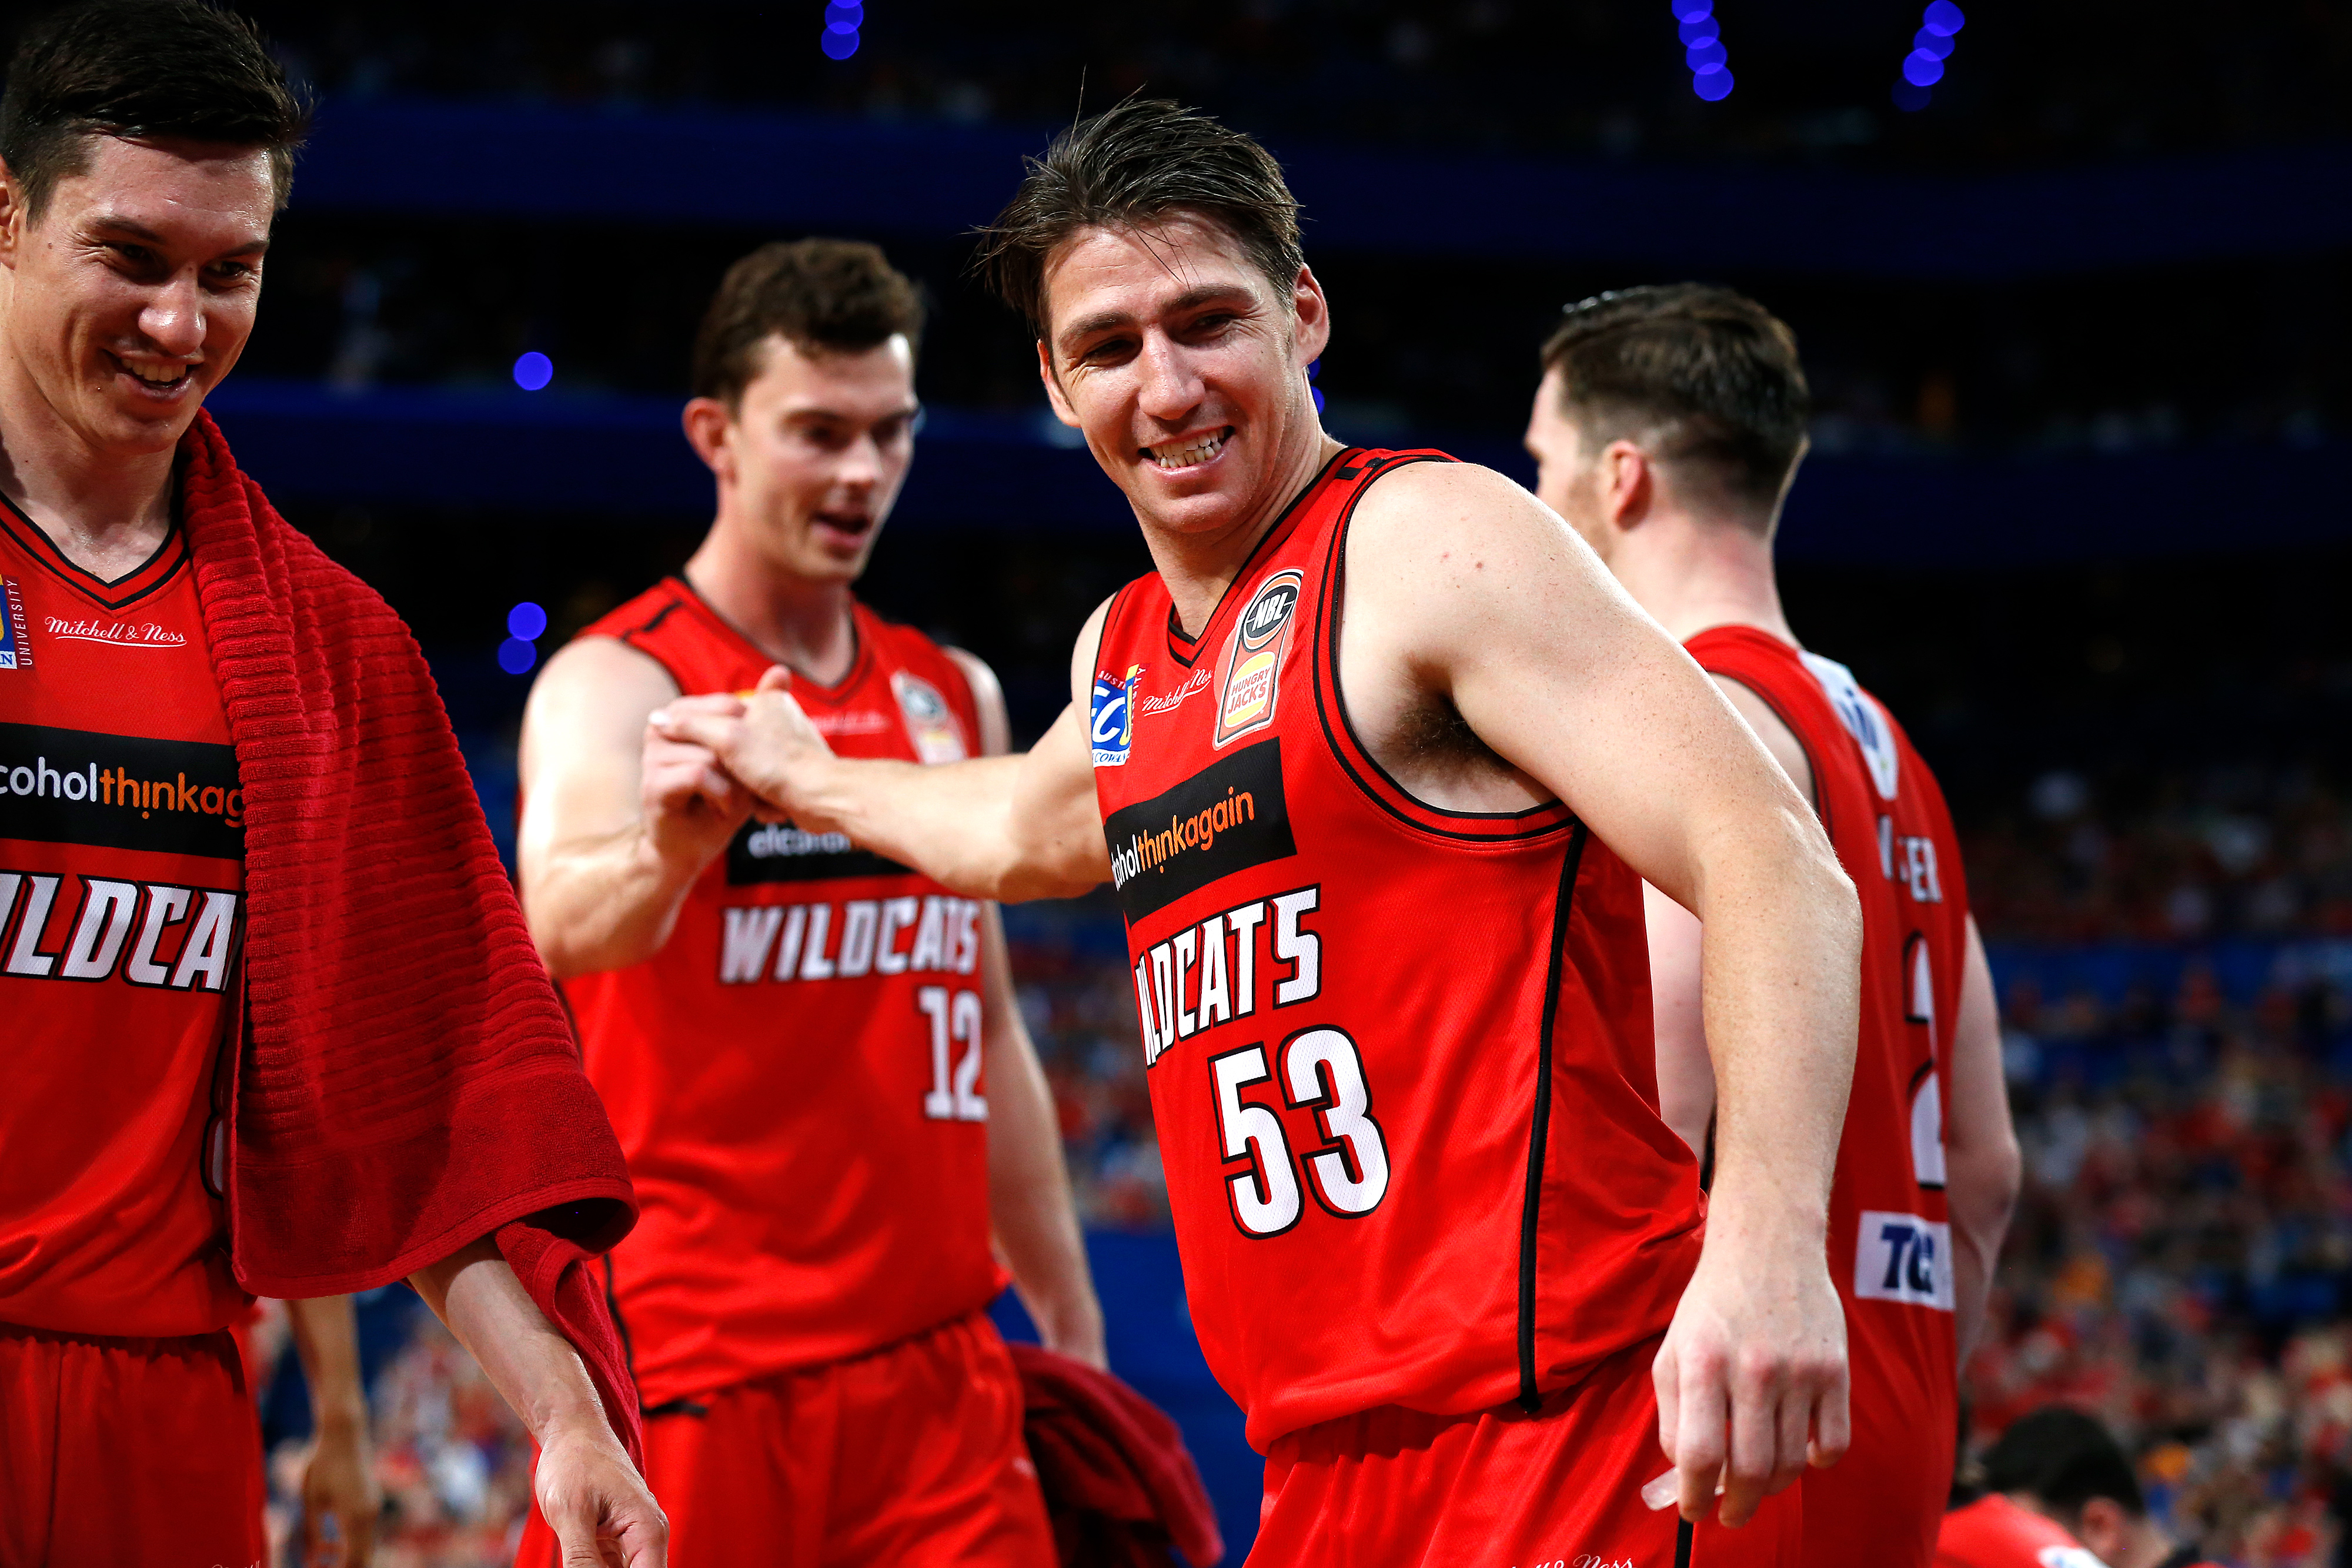 Perth Wildcats players congratulating each other